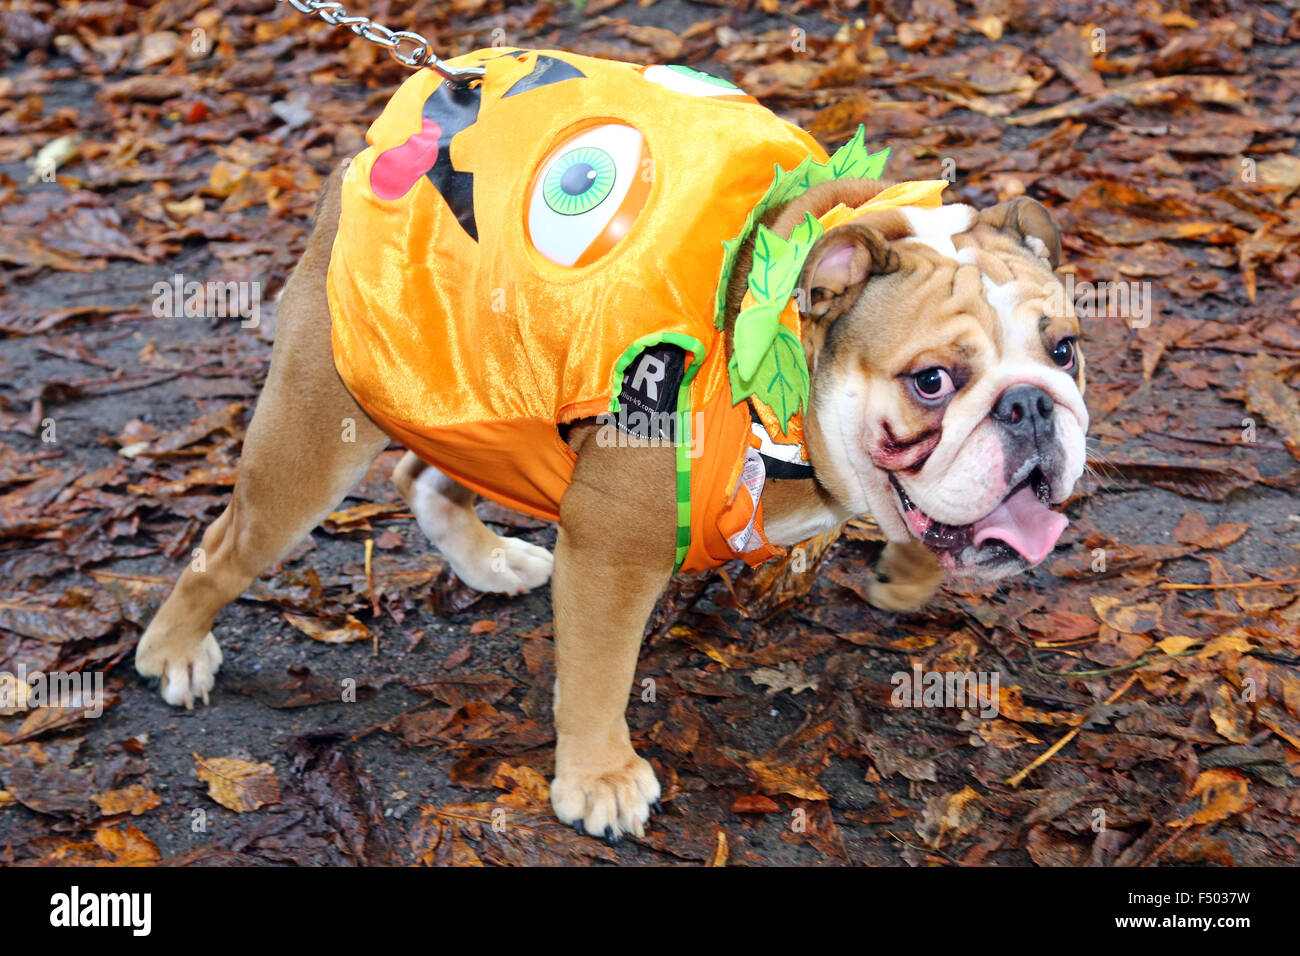 London, UK. 25th October 2015. Buster the Bulldog dressed as a pumpkin at the All Dogs Matter Halloween Dog Show, - Stock Image